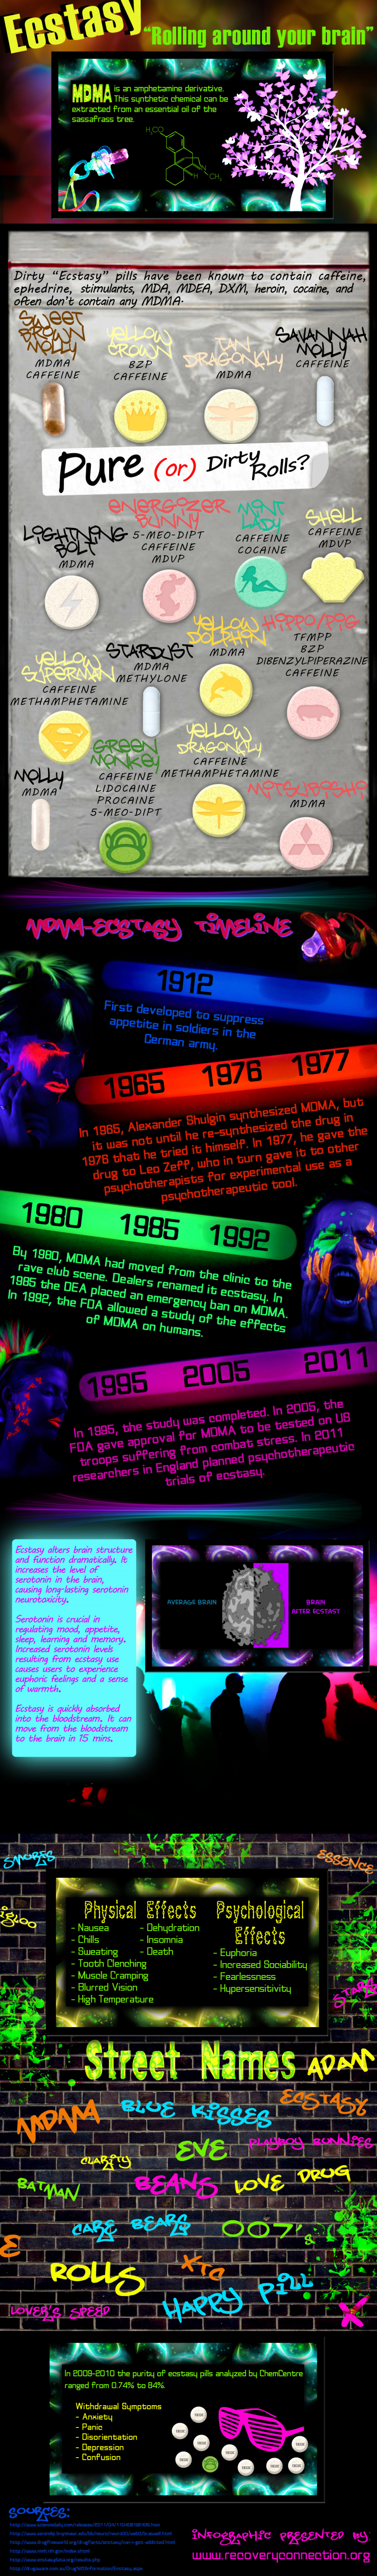 "Ecstasy Effects and History ""Rolling Around Your Brain"" Infographic Infographic"